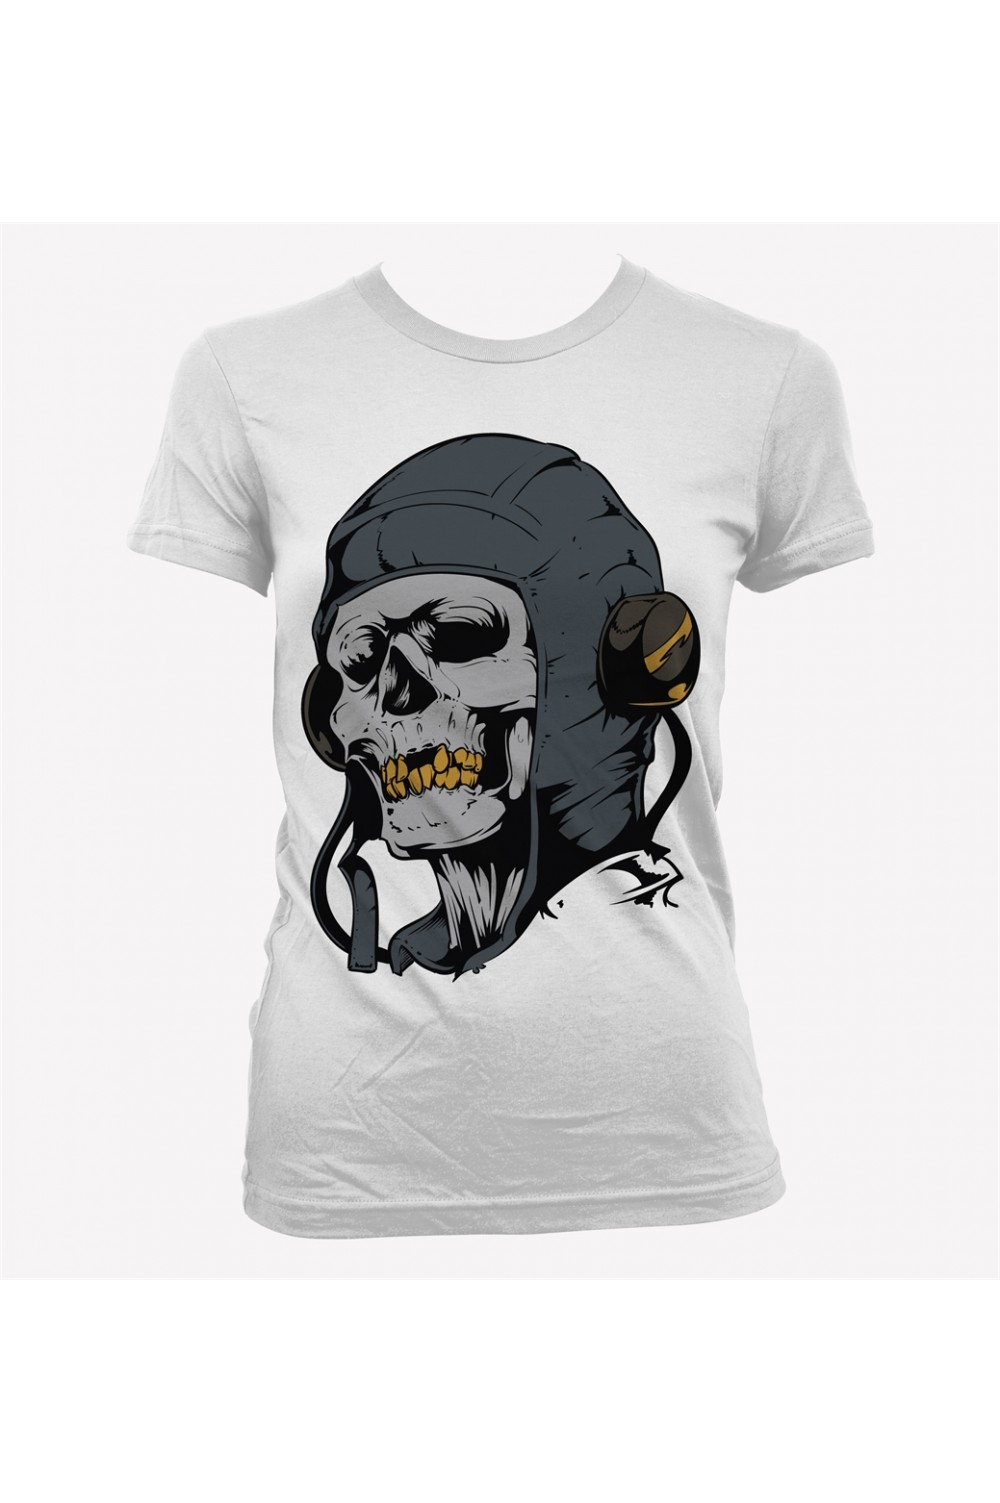 Headphone Skull Women Printed T shirt 4003